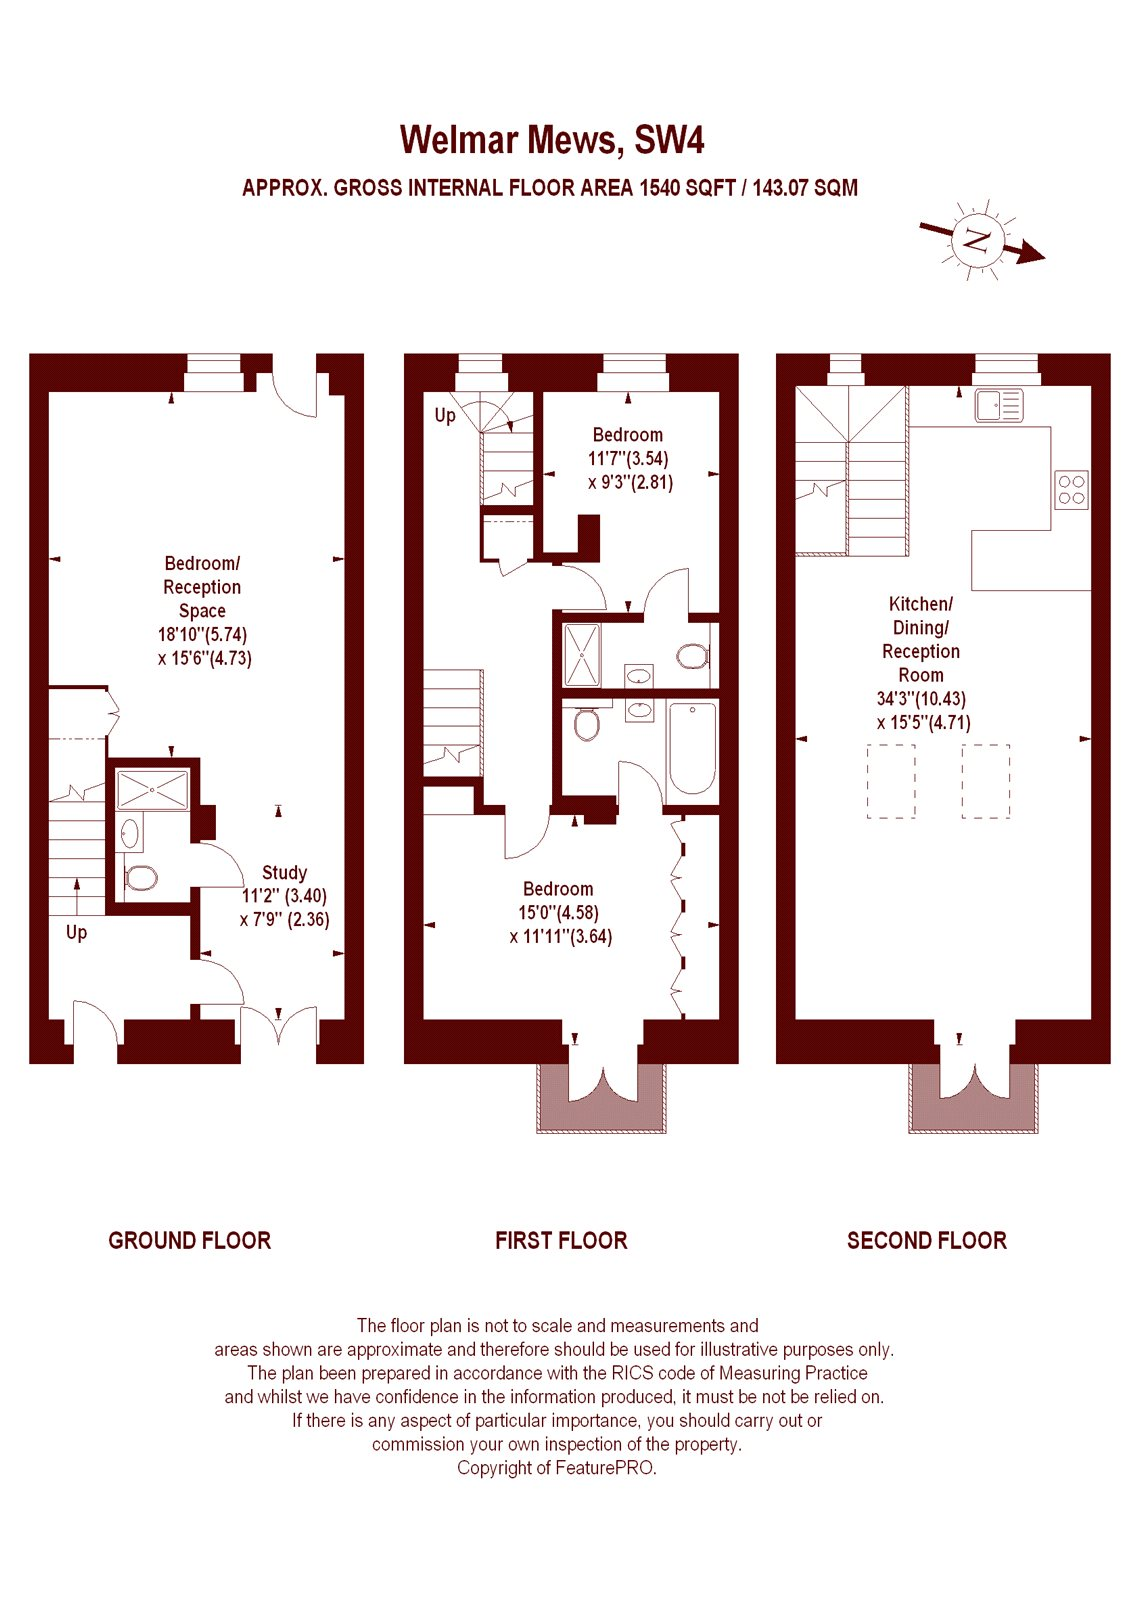 Property For Sale Welmar Mews